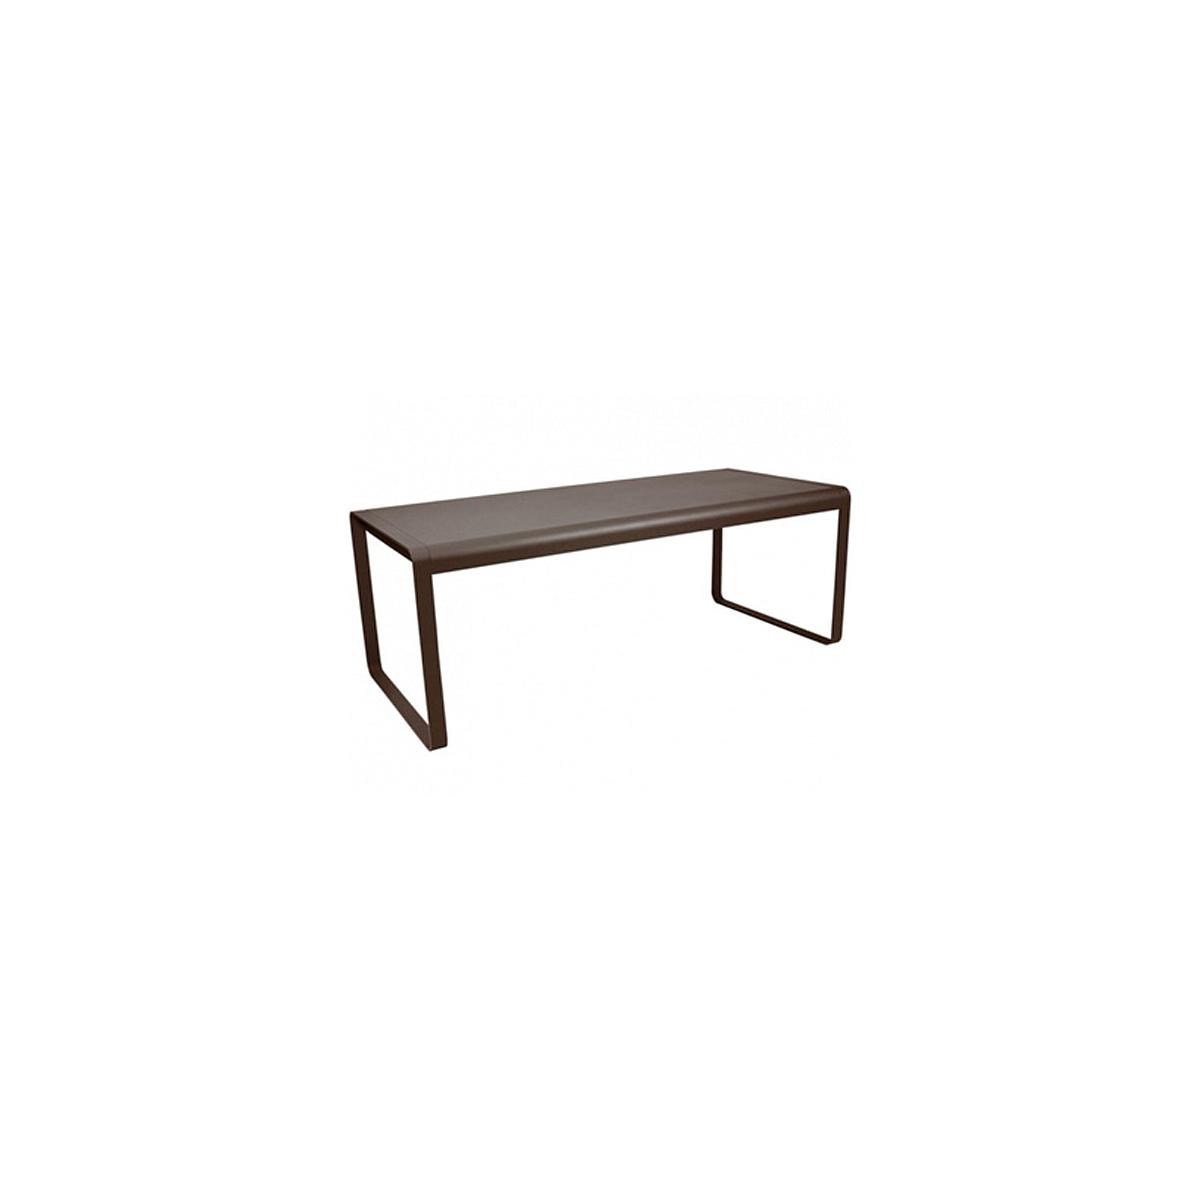 Table de jardin BELLEVIE Fermob brun rouille